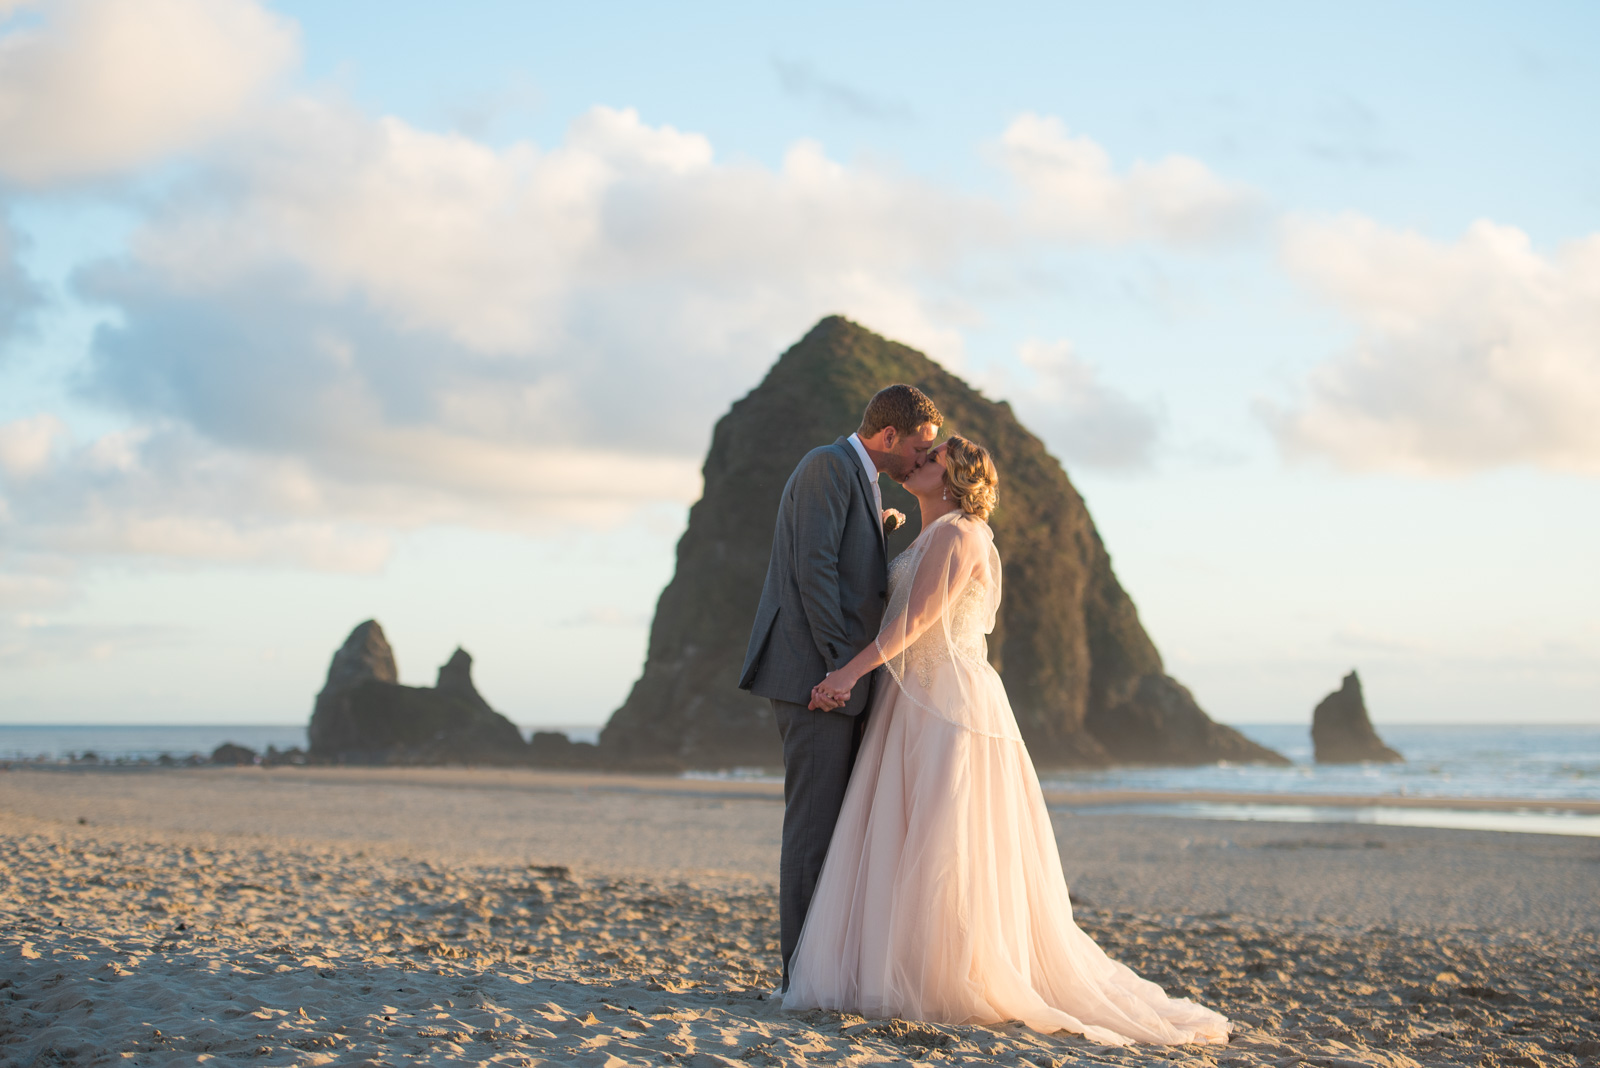 victoria-wedding-photographers-cannon-beach-oregon-wedding-42.jpg